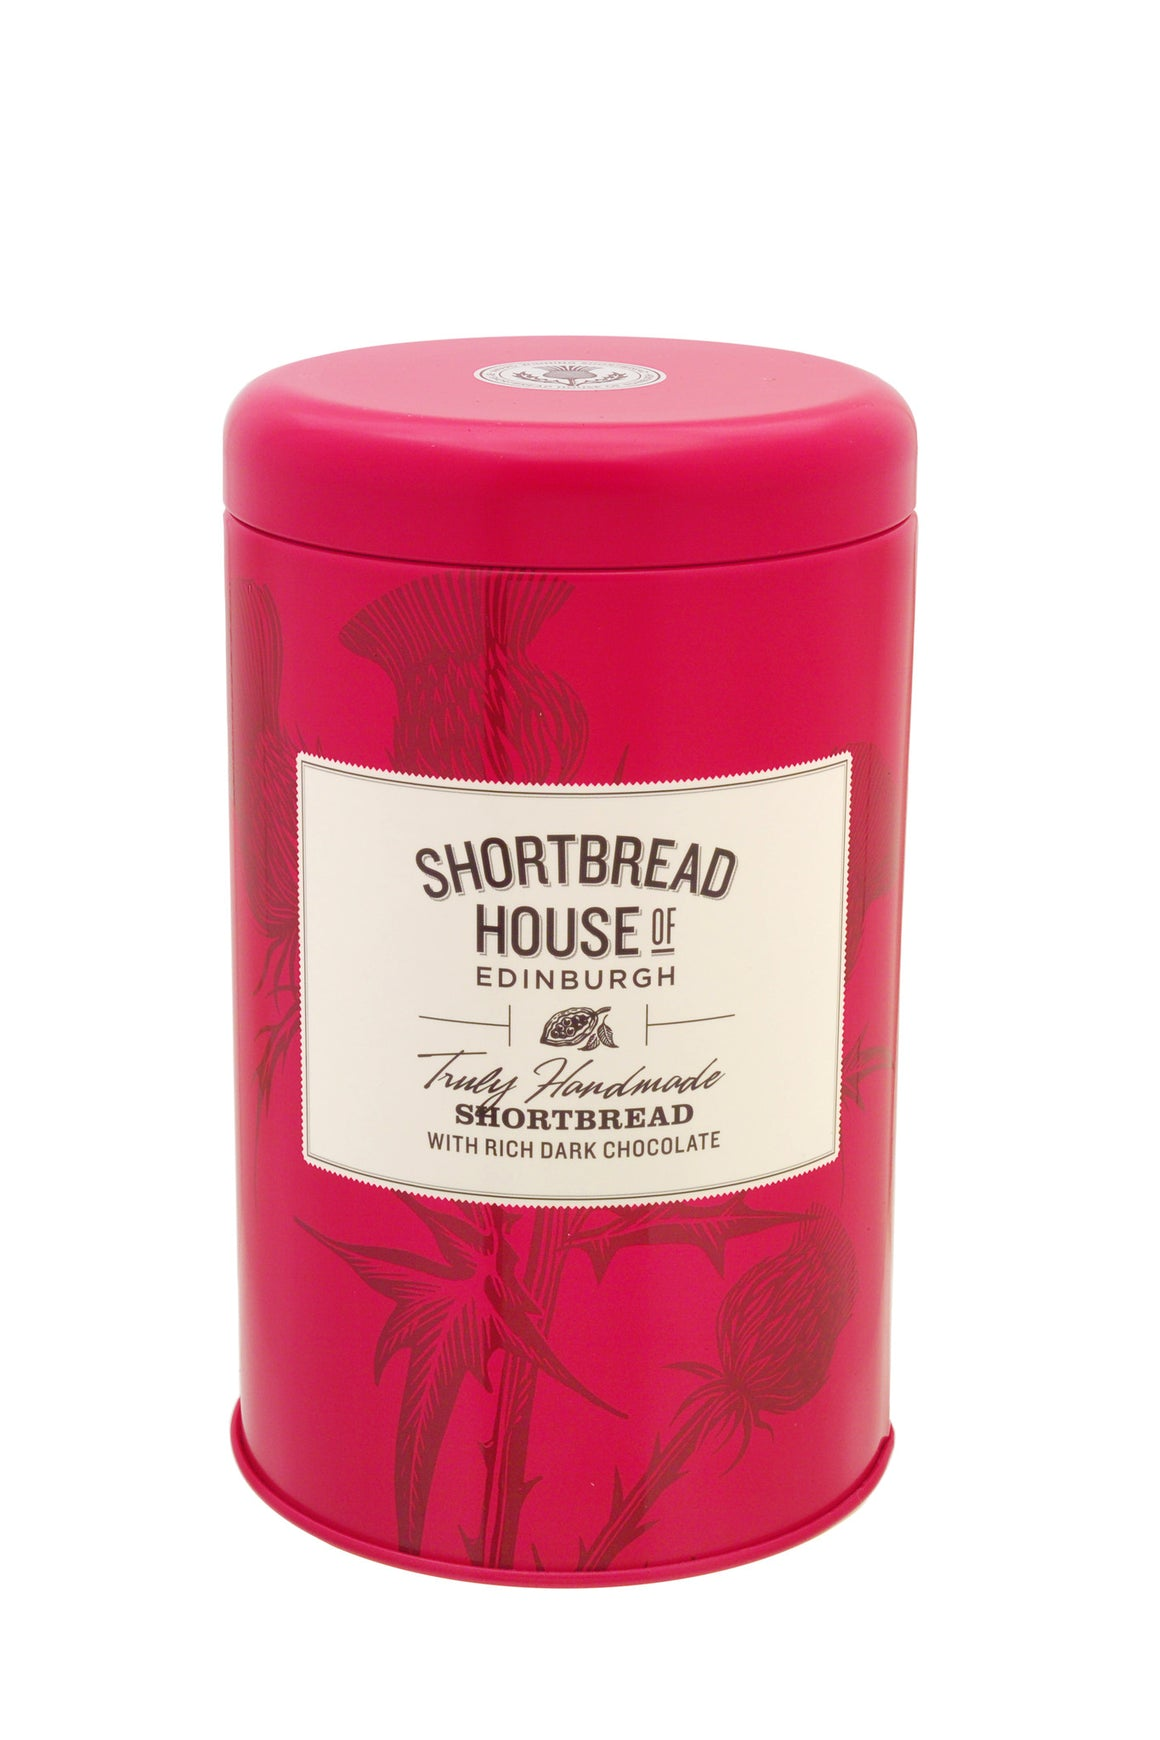 Shortbread Dark Chocolate - 140g